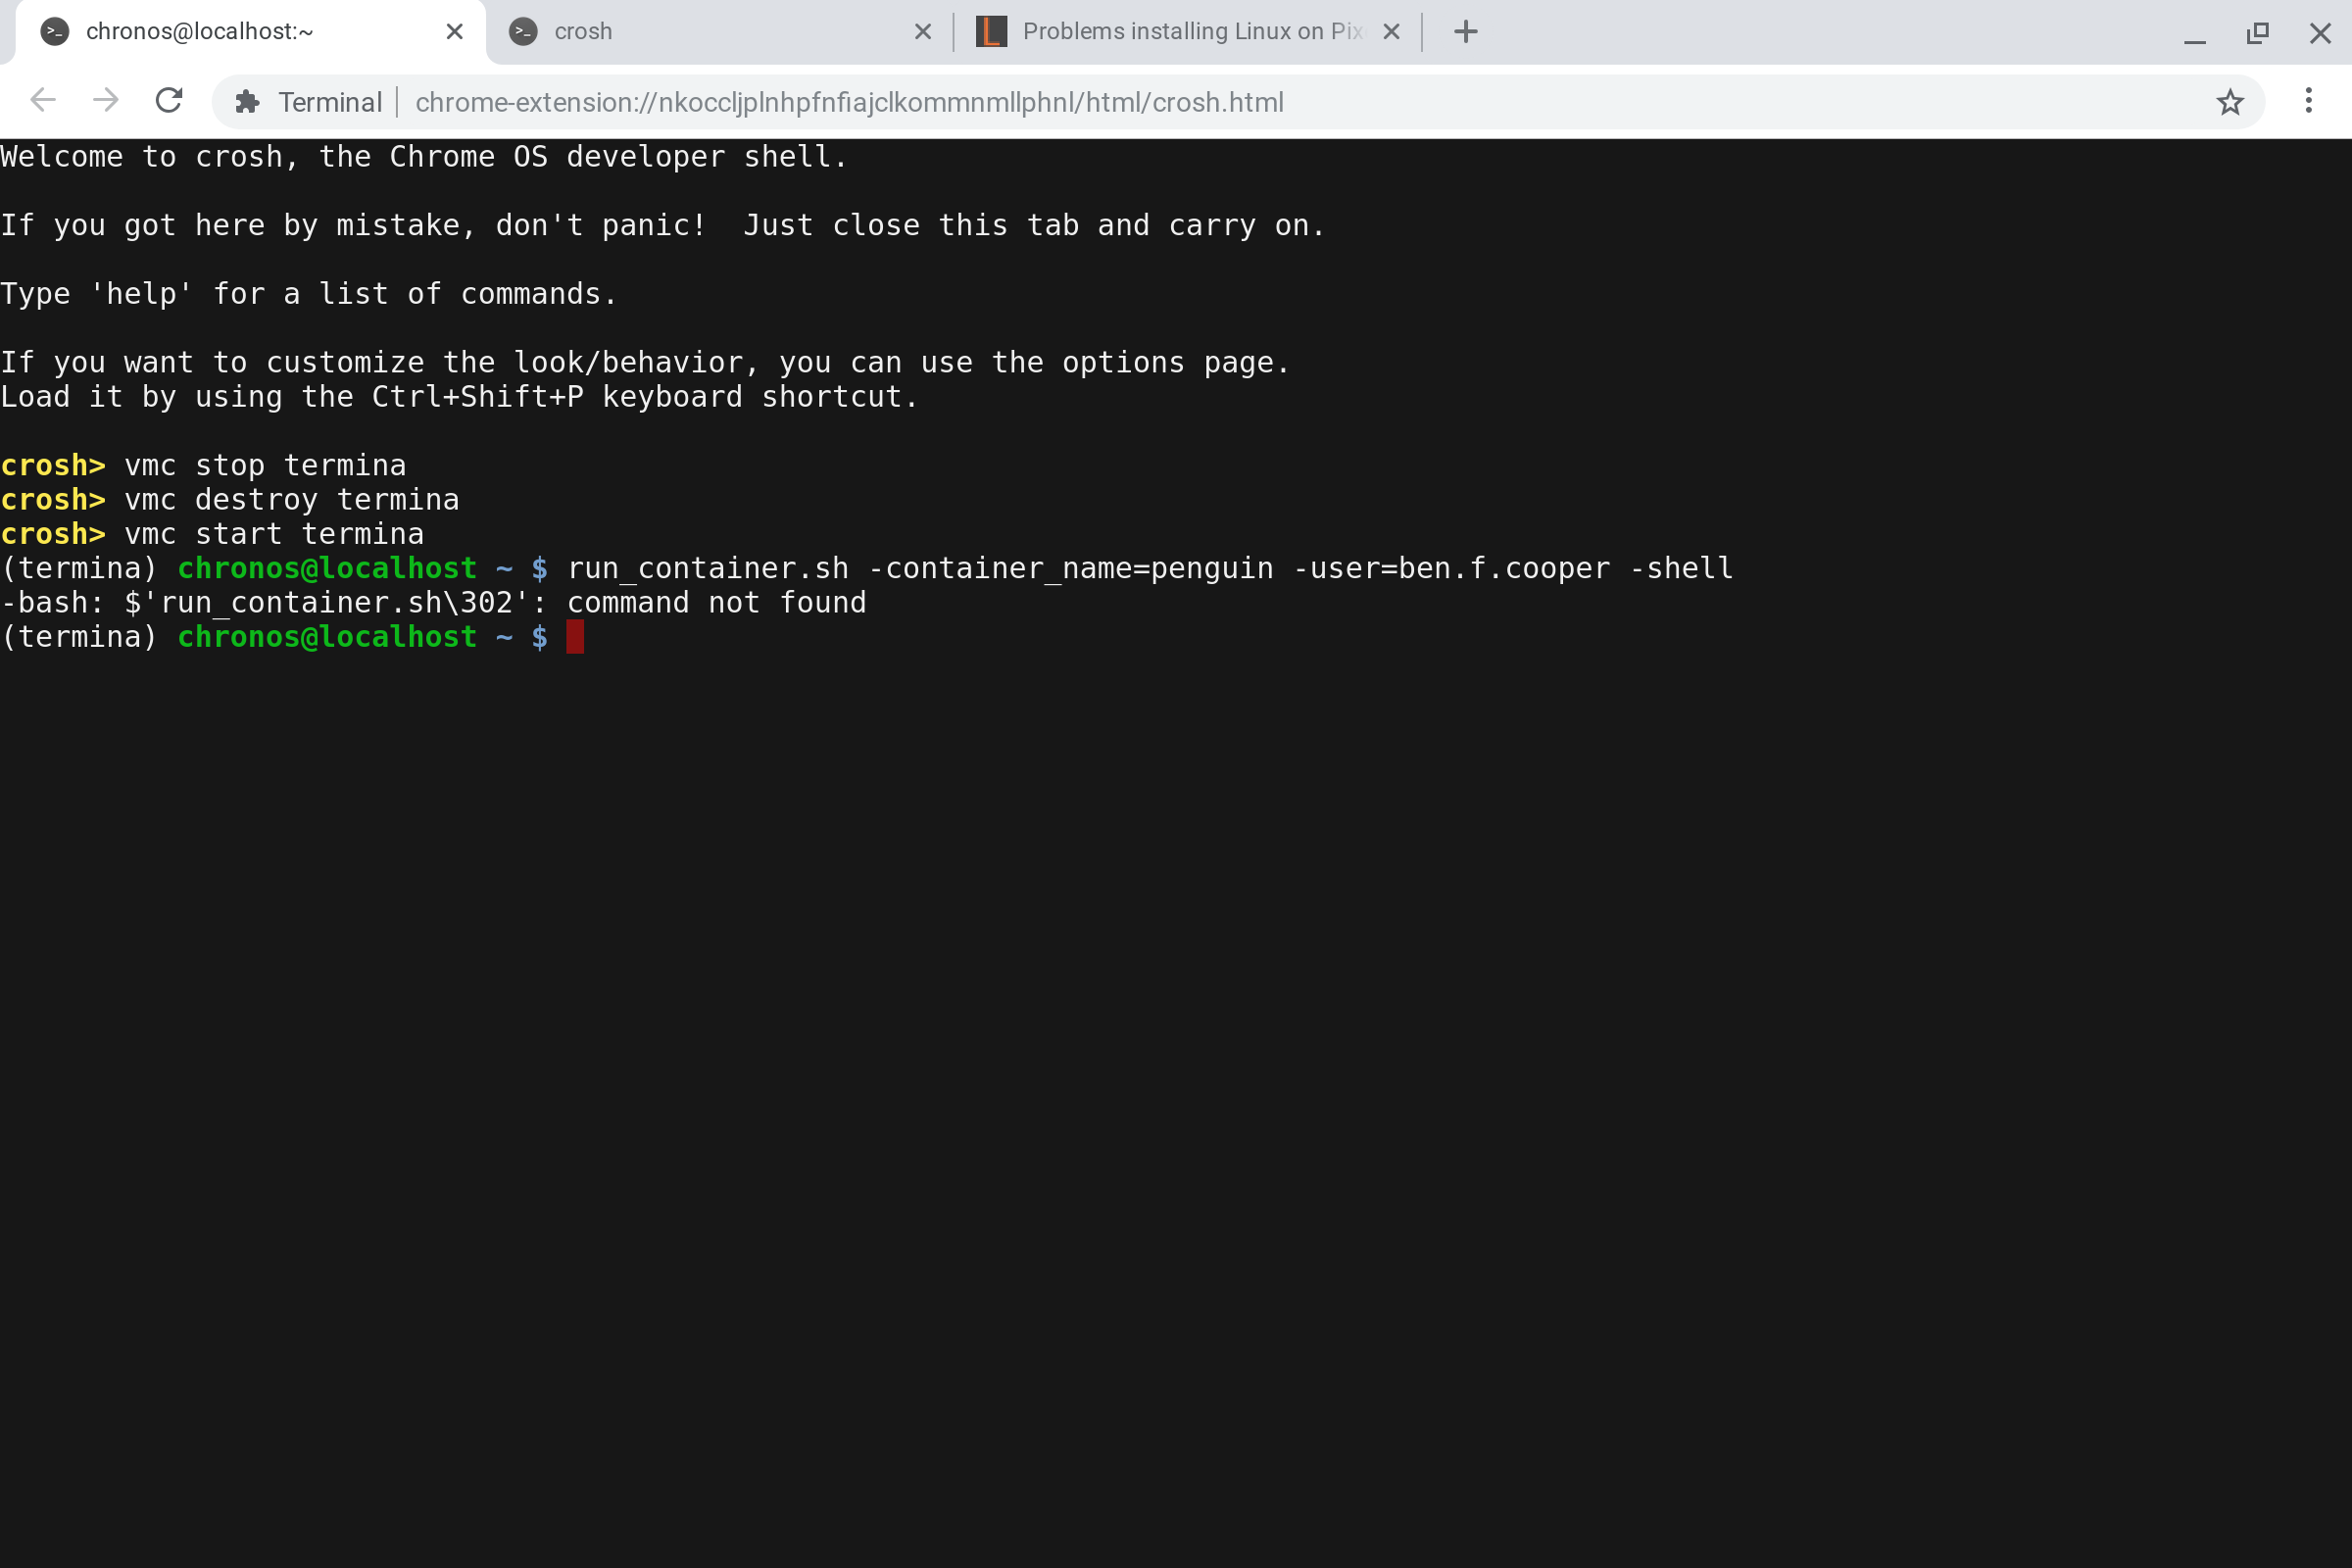 Problems installing Linux on Pixelbook   The Linux container didn't